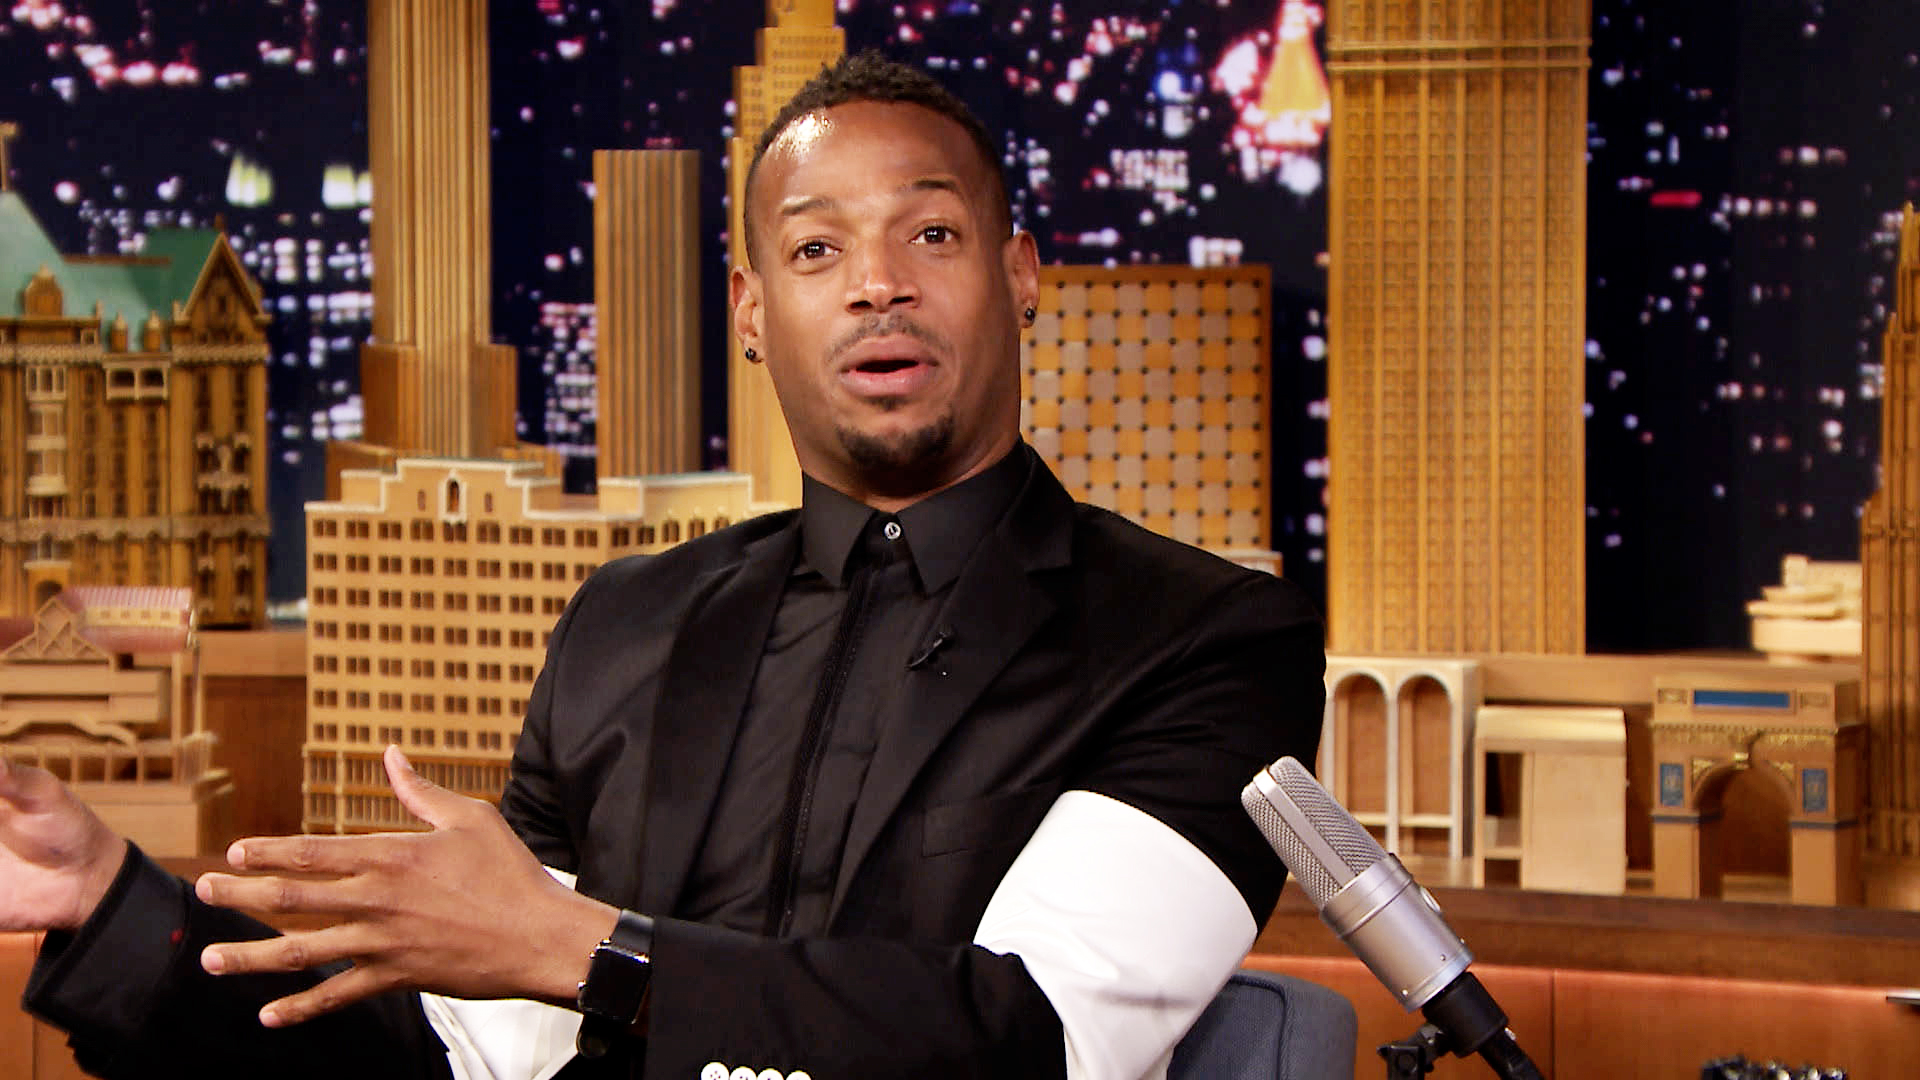 Marlon Wayans And Son Marlon Wayans Is Happy To Be On Nbc